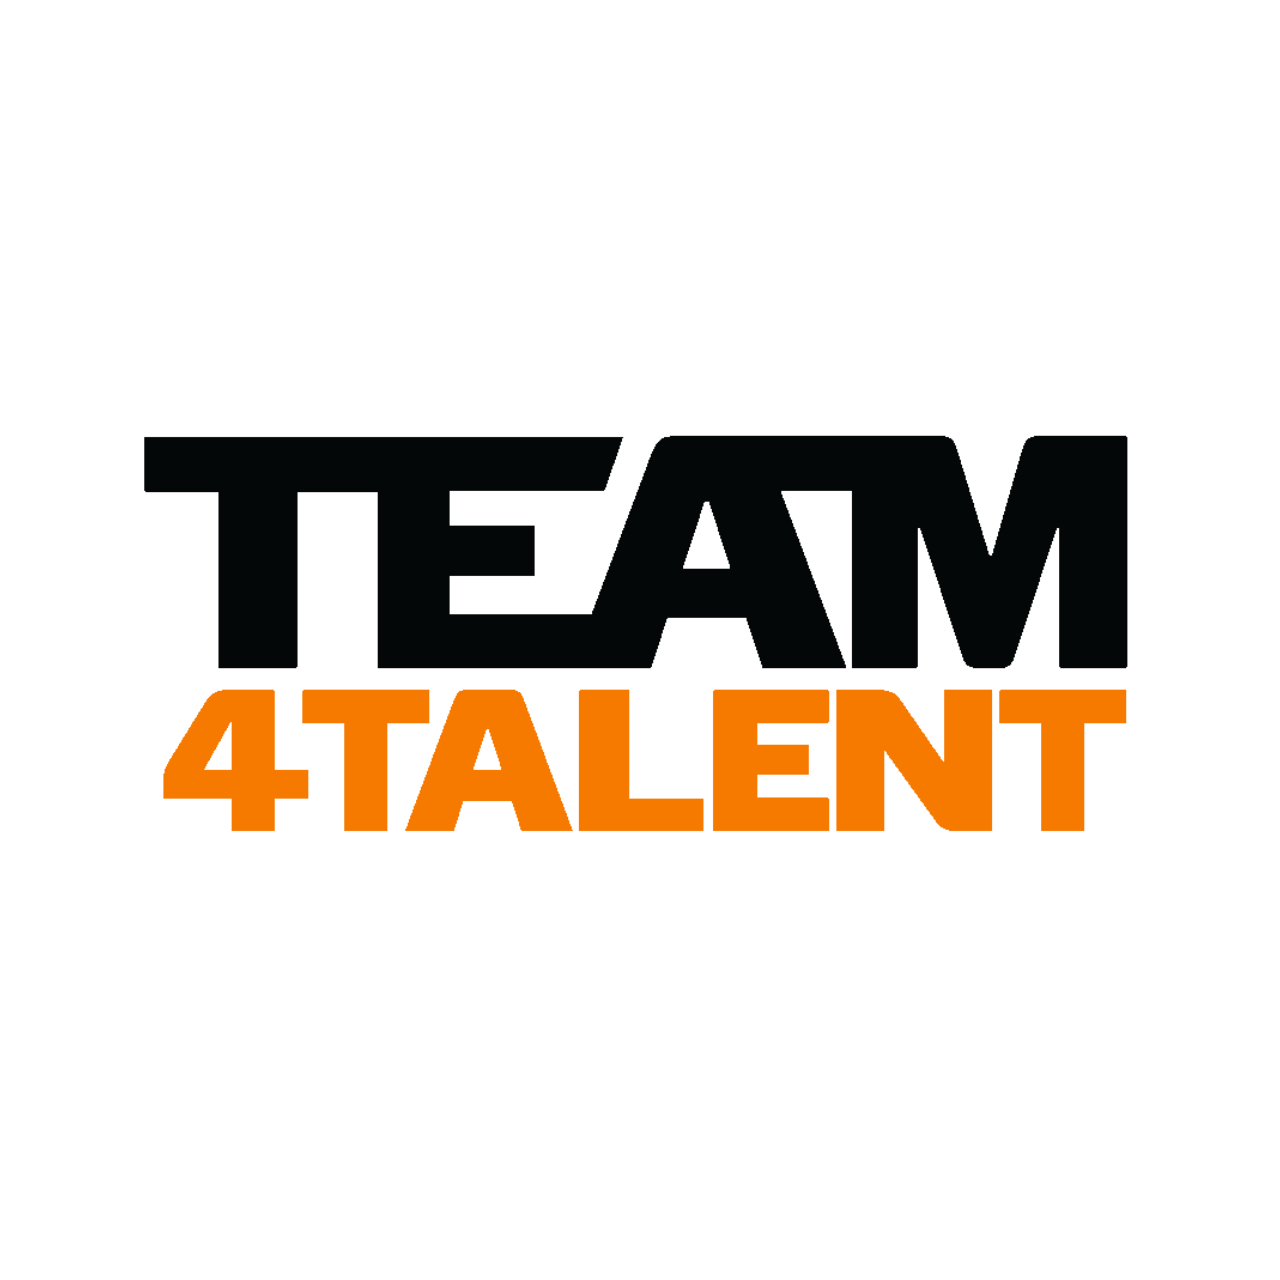 Team4Talent - I'm proud to be part of a Dutch professional triathlon team, Team4Talent, for the 2019 season, and grateful to Canyon, FFWD, Sanas, Casco, Sailfish, Bont, Tacx and Bioracer for their support of the team.